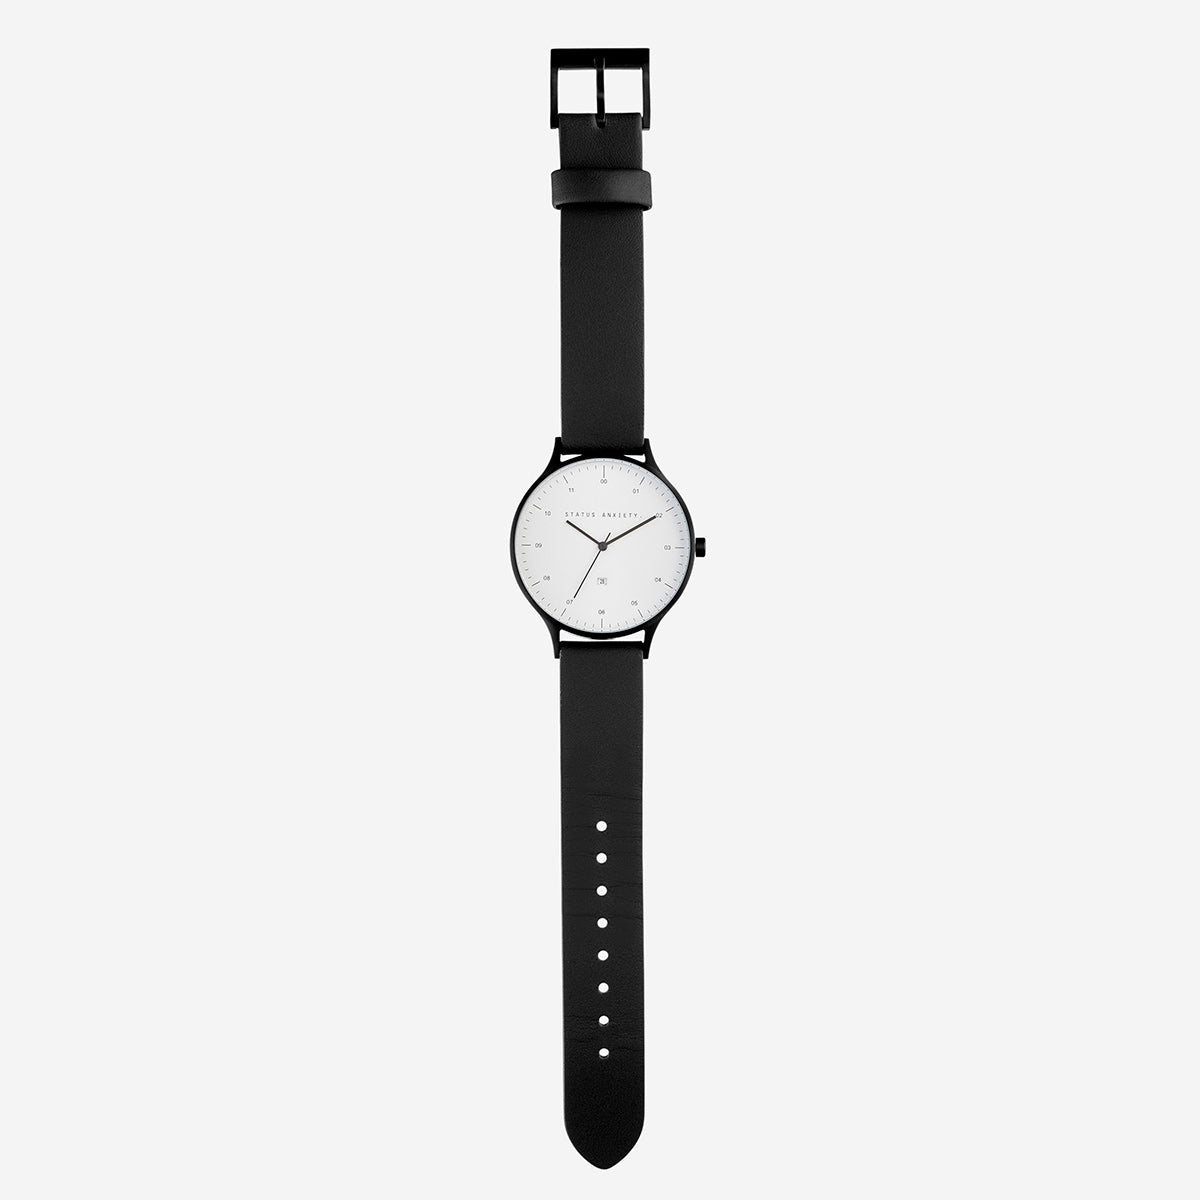 Status Anxiety Inertia Leather Unisex Watch - White Face/Black Strap